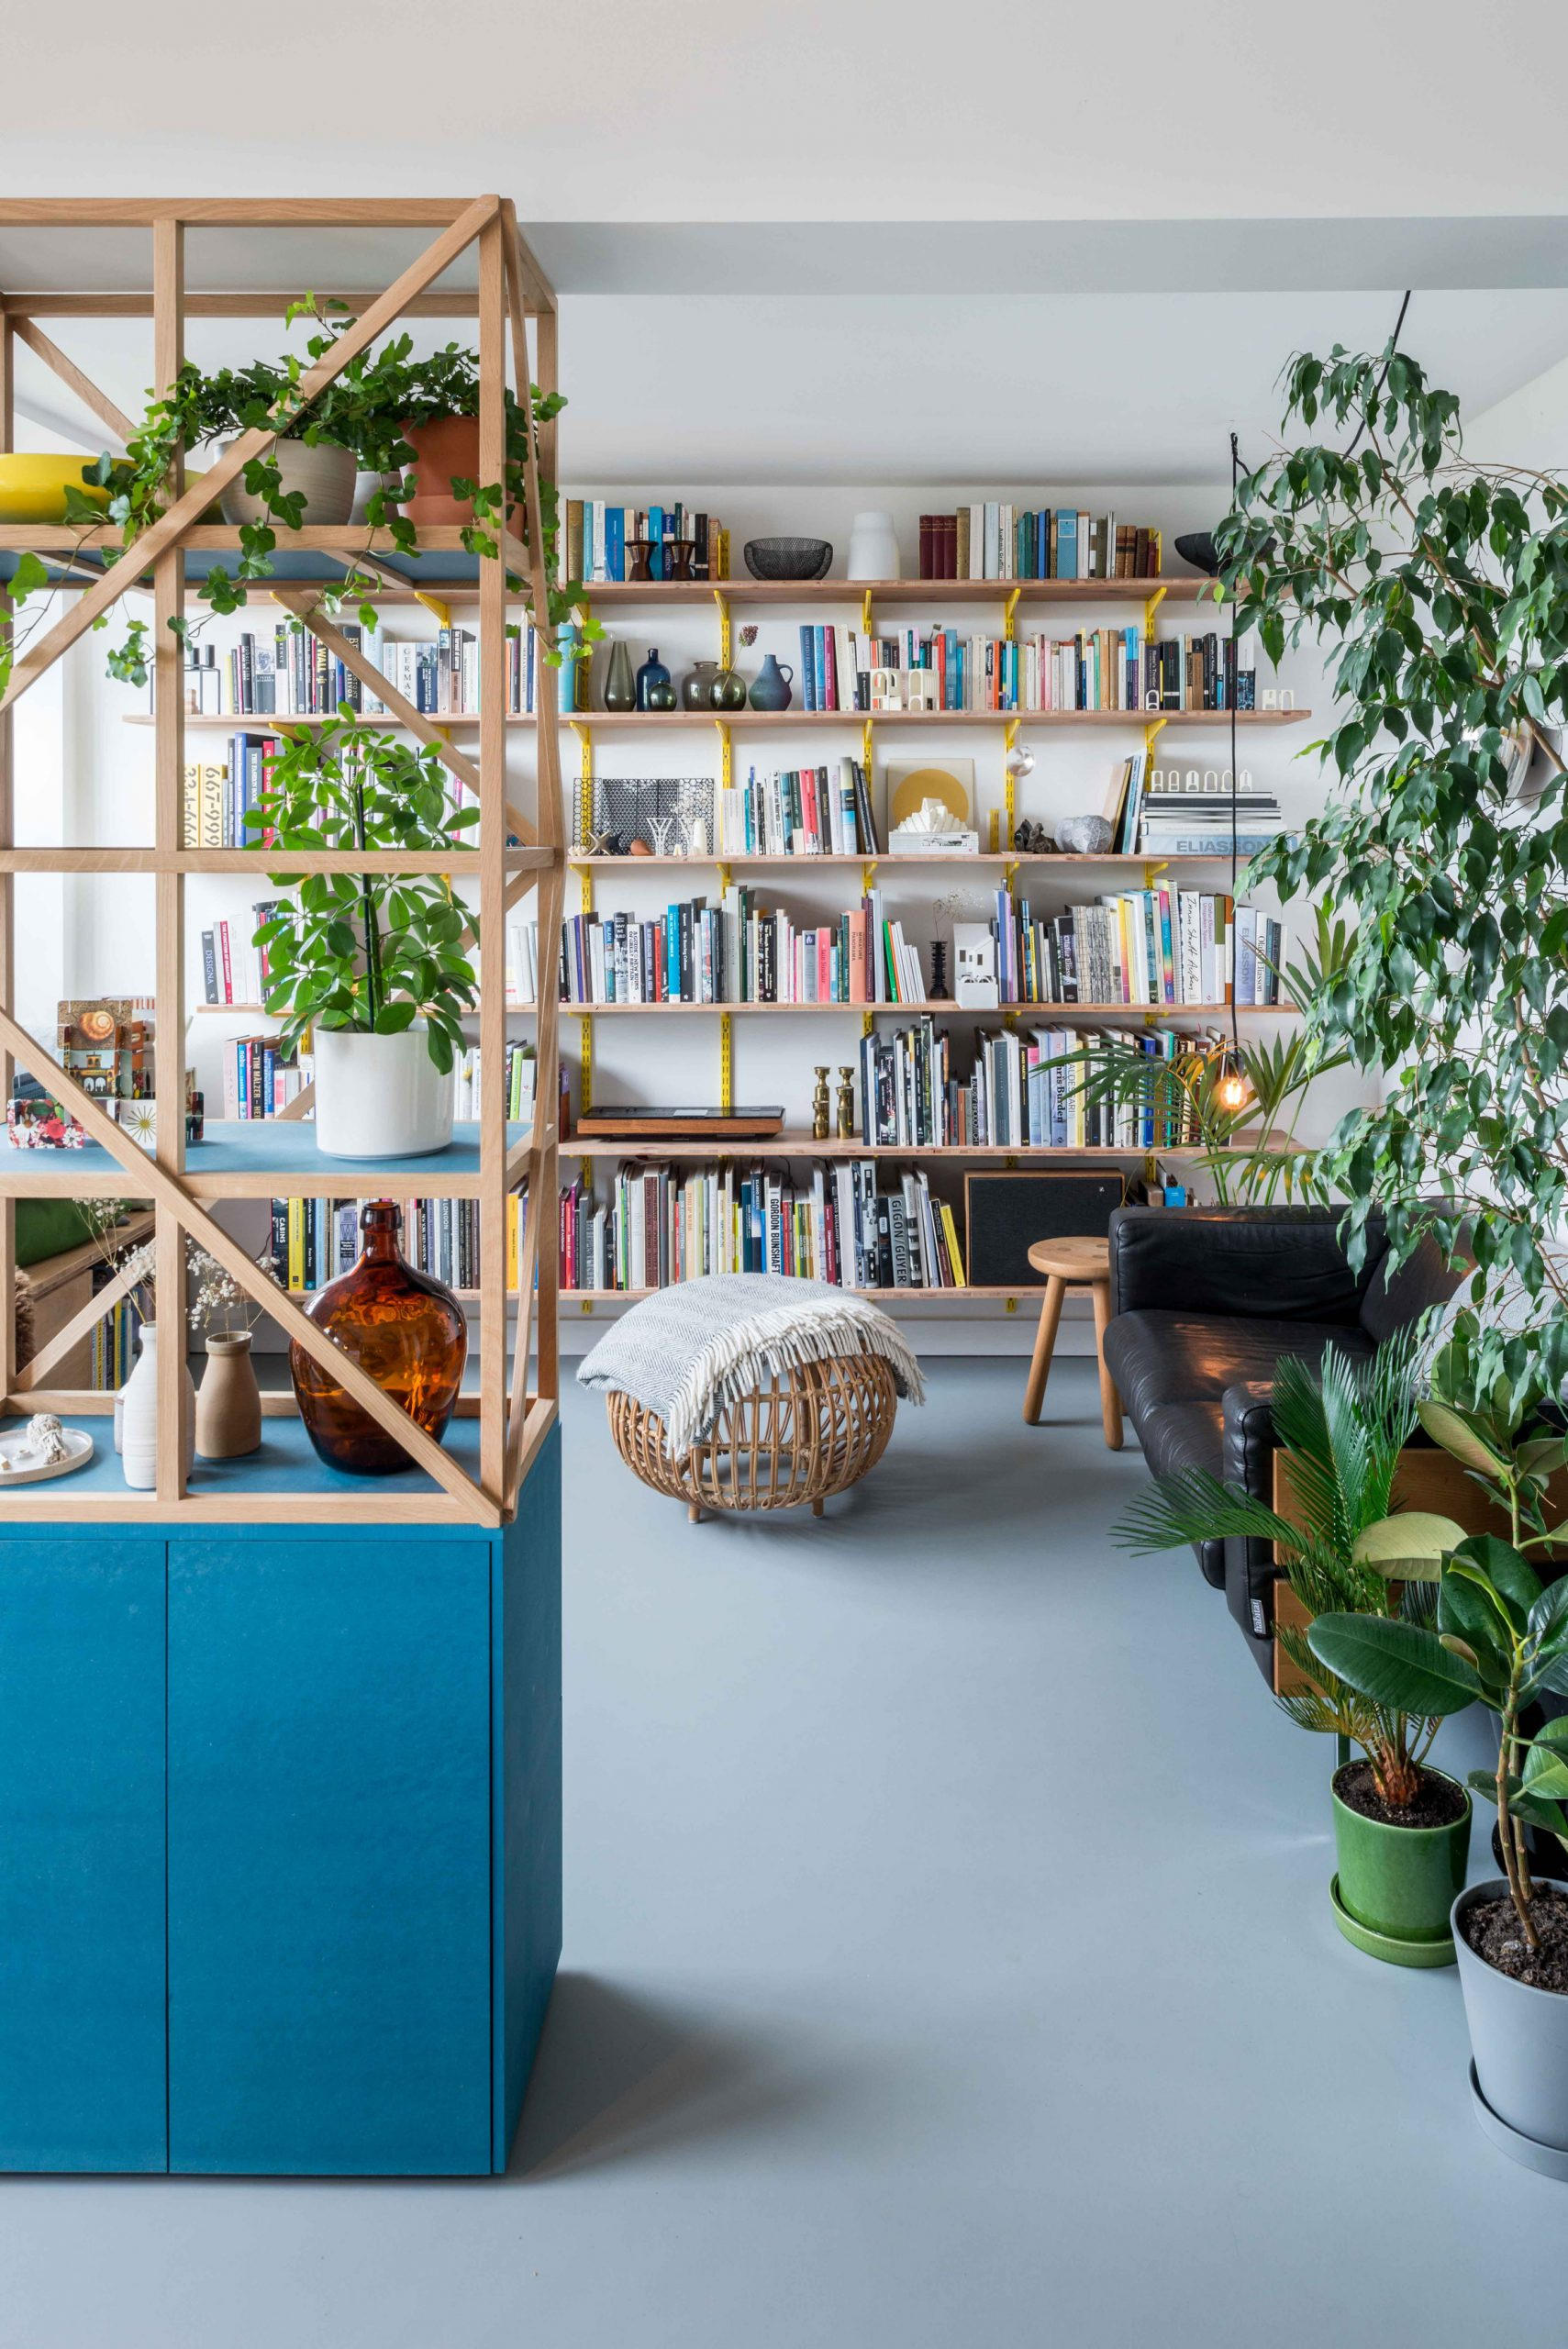 Living room of architect Ben Allen's London flat